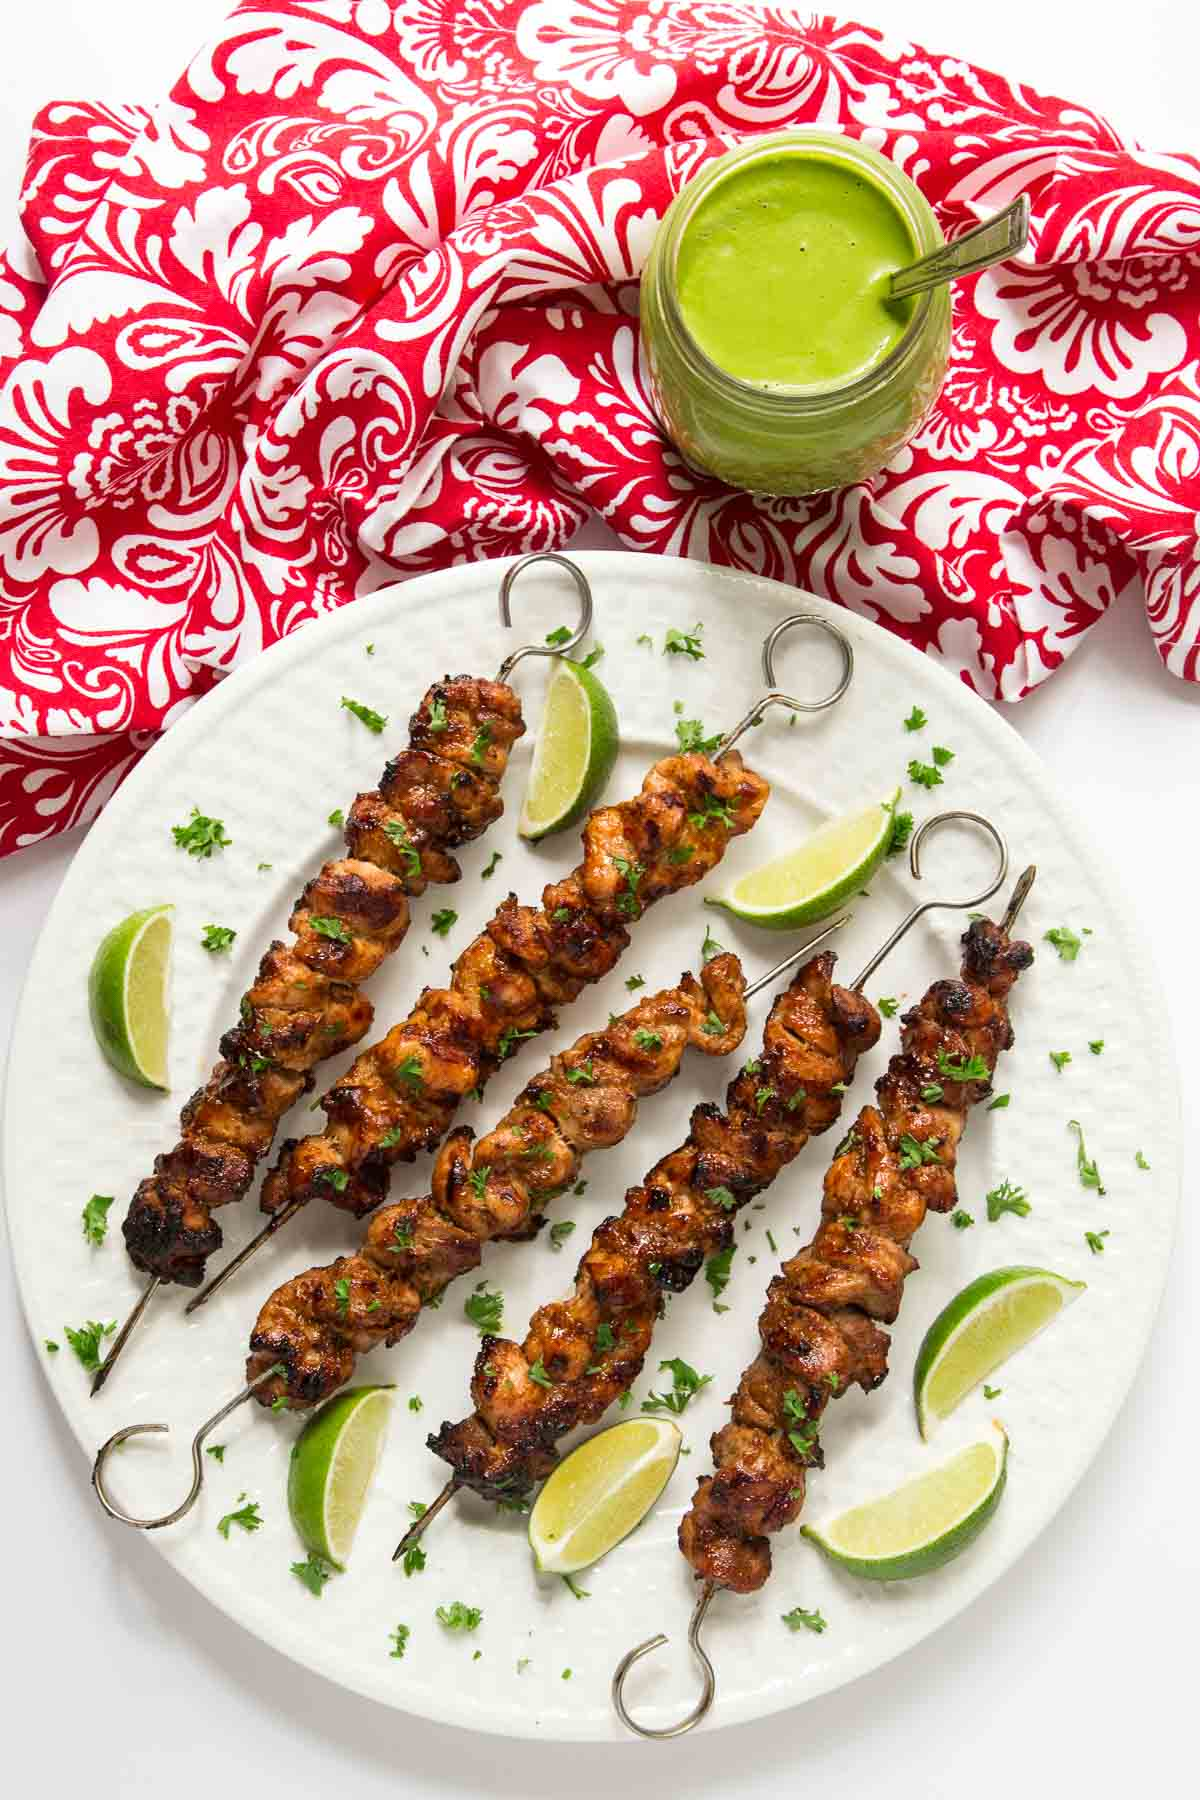 Overhead photo of a serving plate filled with Peruvian Grilled Chicken Skewers.